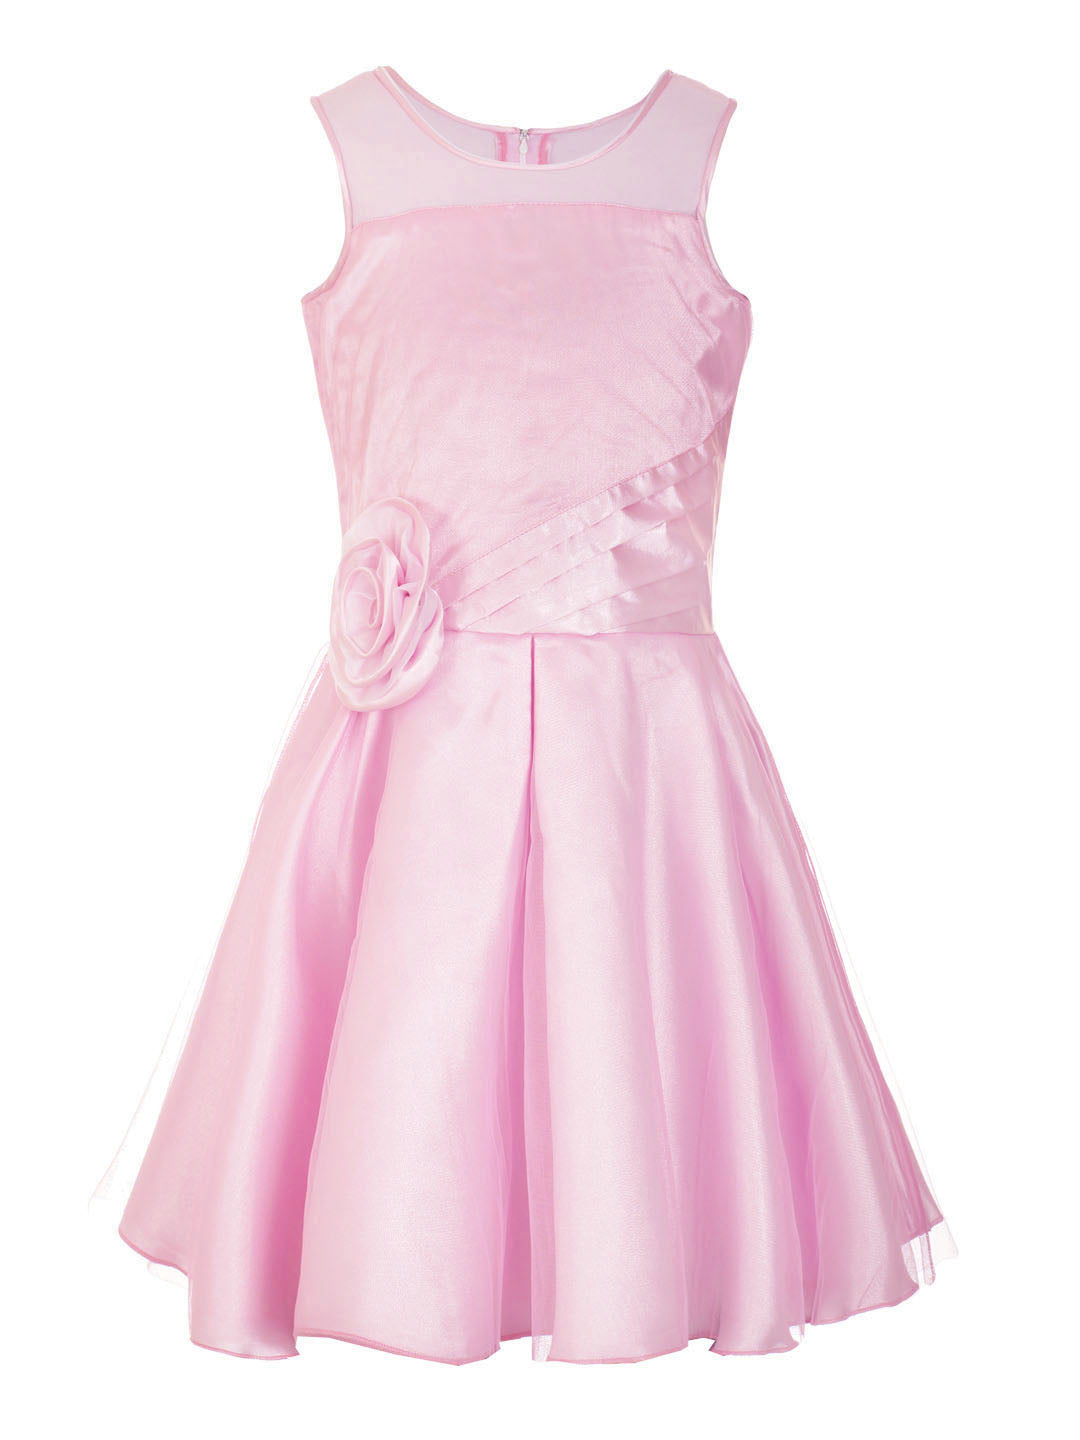 Naughty Ninos Girls Pink Solid Fit and Flare Party Dress